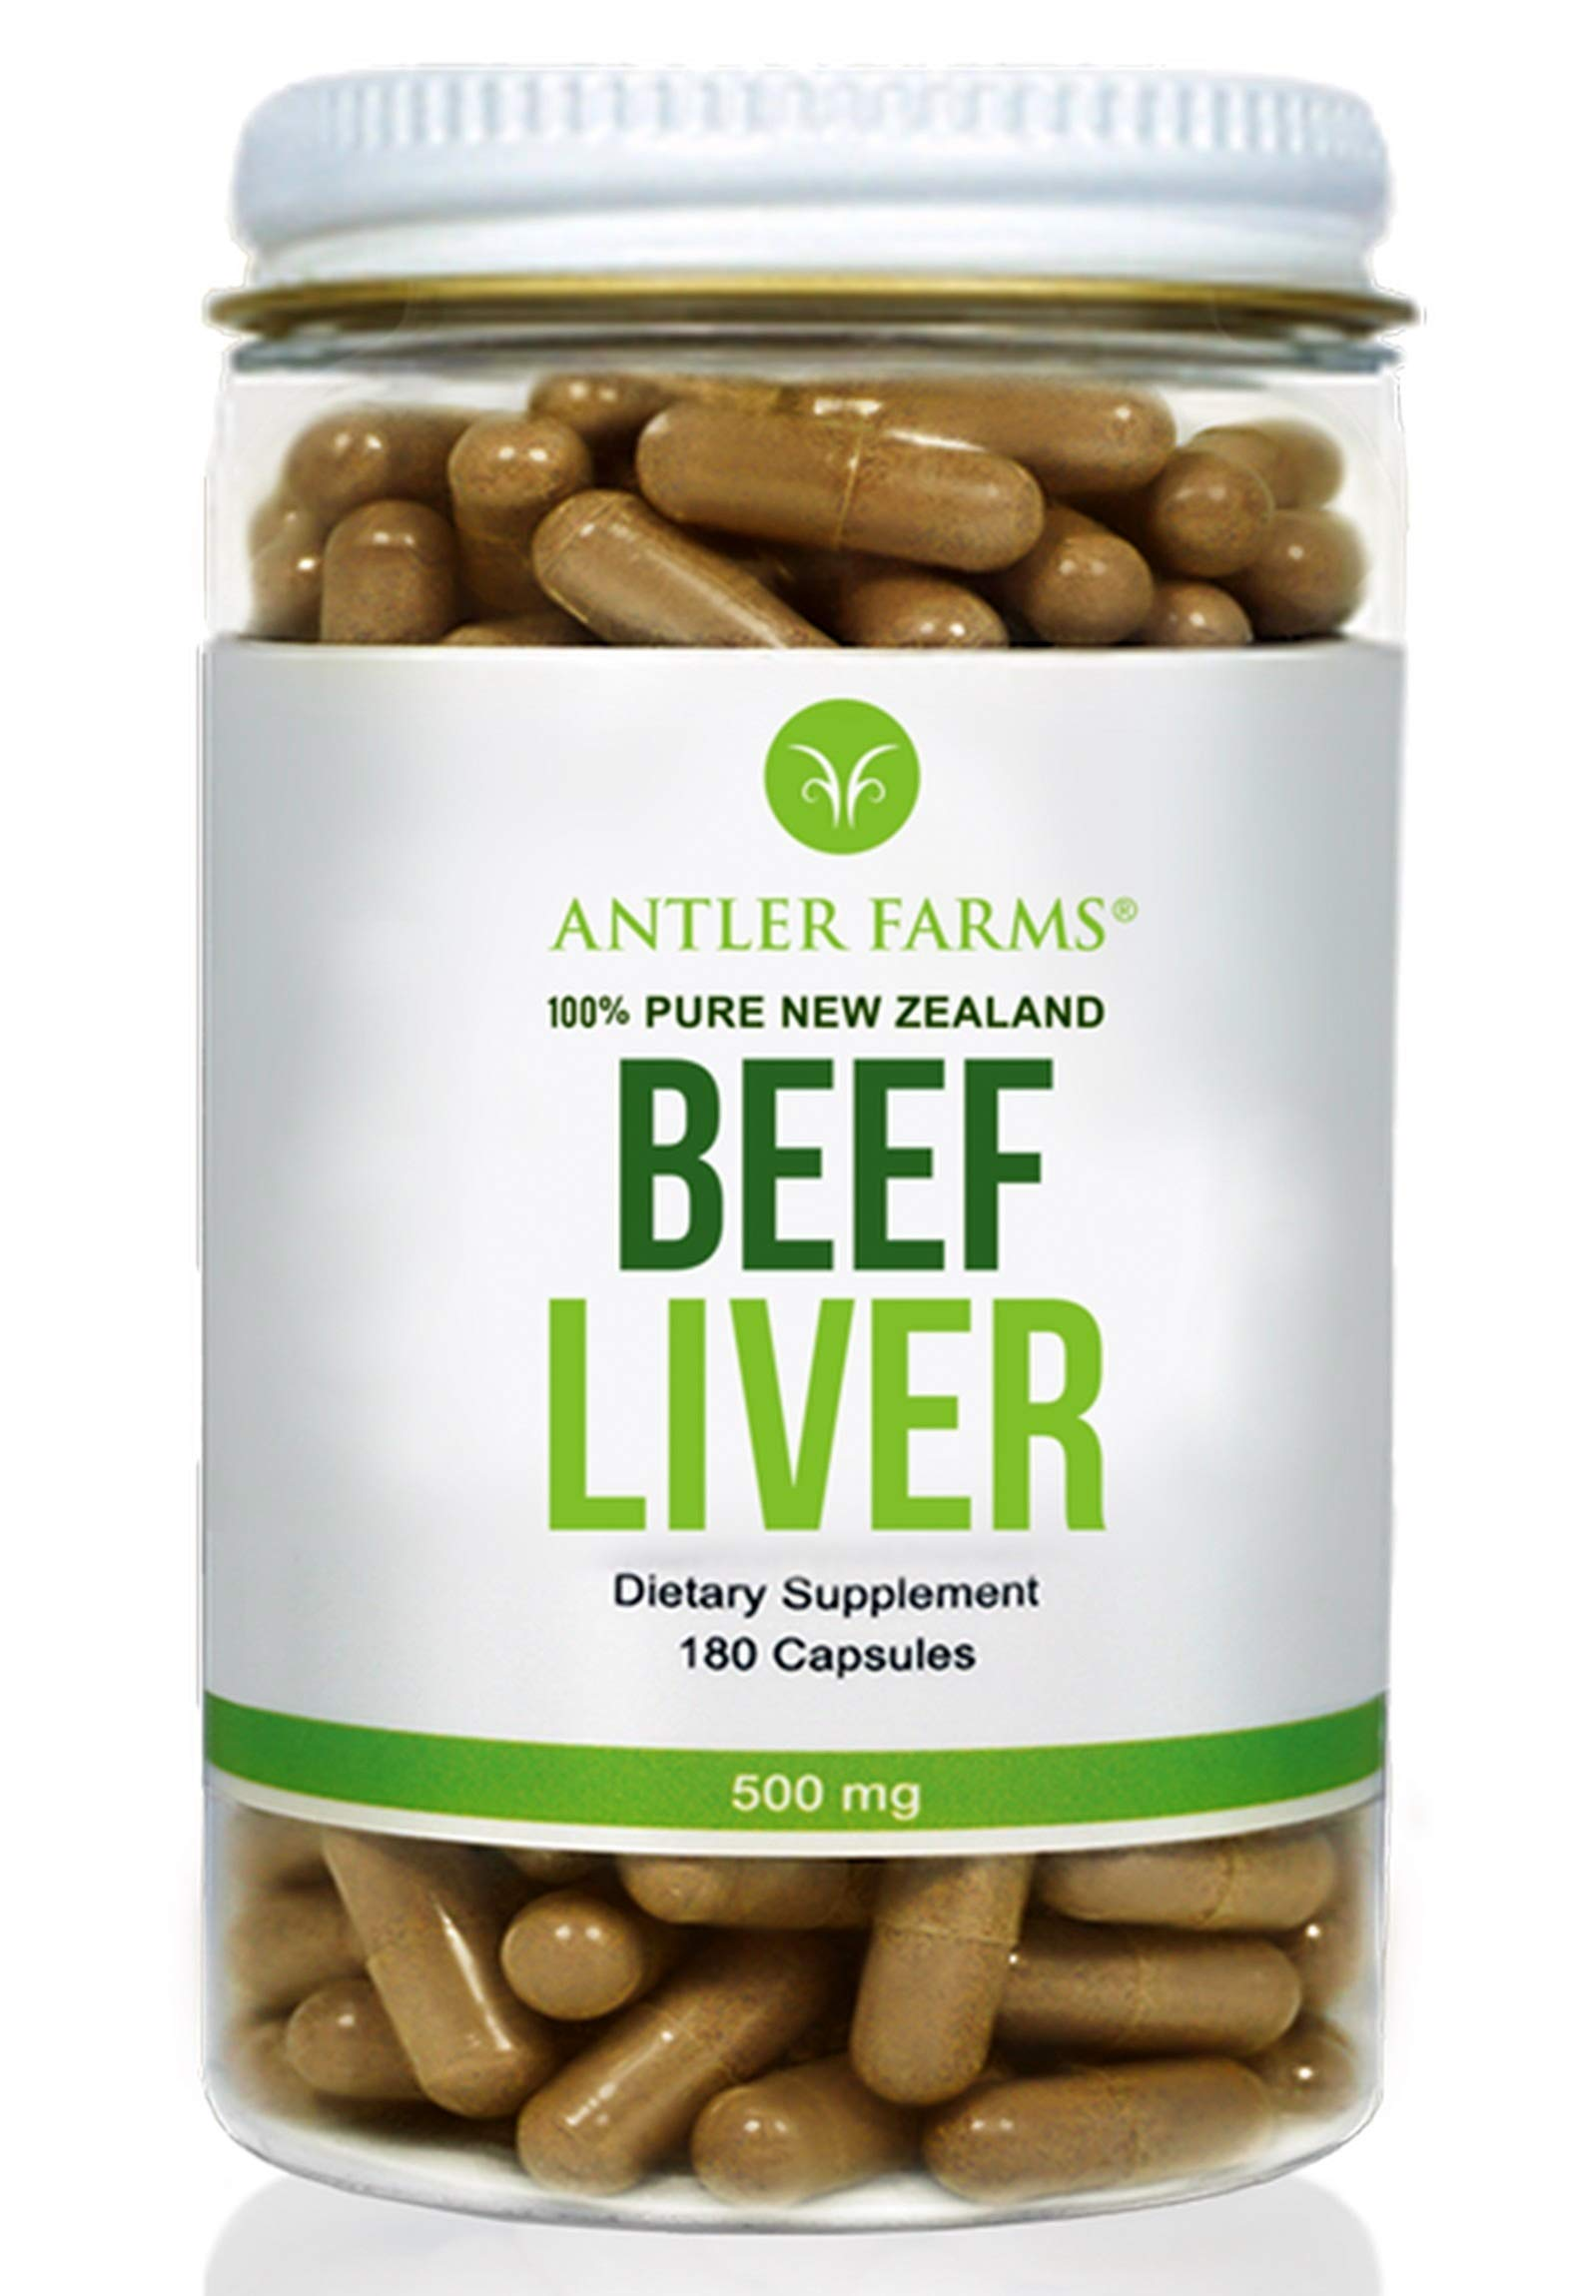 Antler Farms - 100% Pure New Zealand Beef Liver, 180 Capsules, 500mg - Grass Fed, Cold Processed Supplement, NO Hormones, NO Antibiotics, NO Chemicals, NO GMOs by Antler Farms